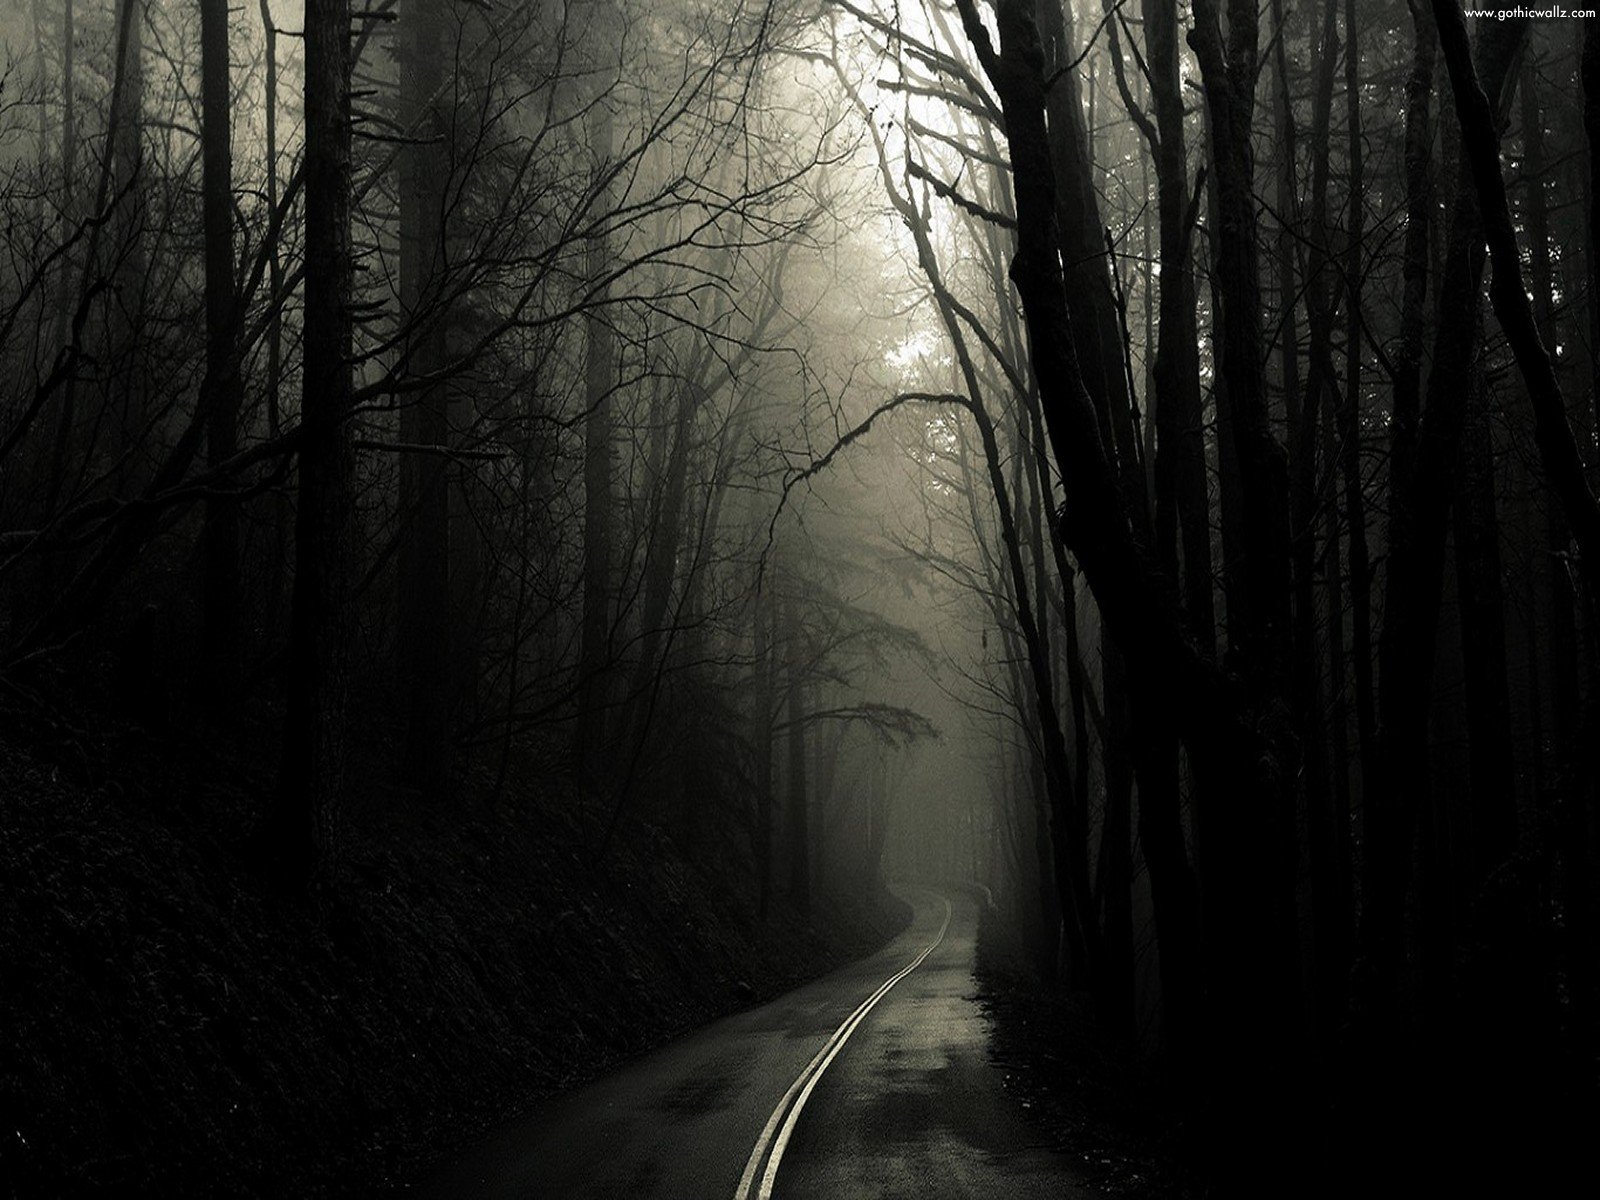 gothic wallpapers 08gothicwallzblogspotcomjpg 1600x1200